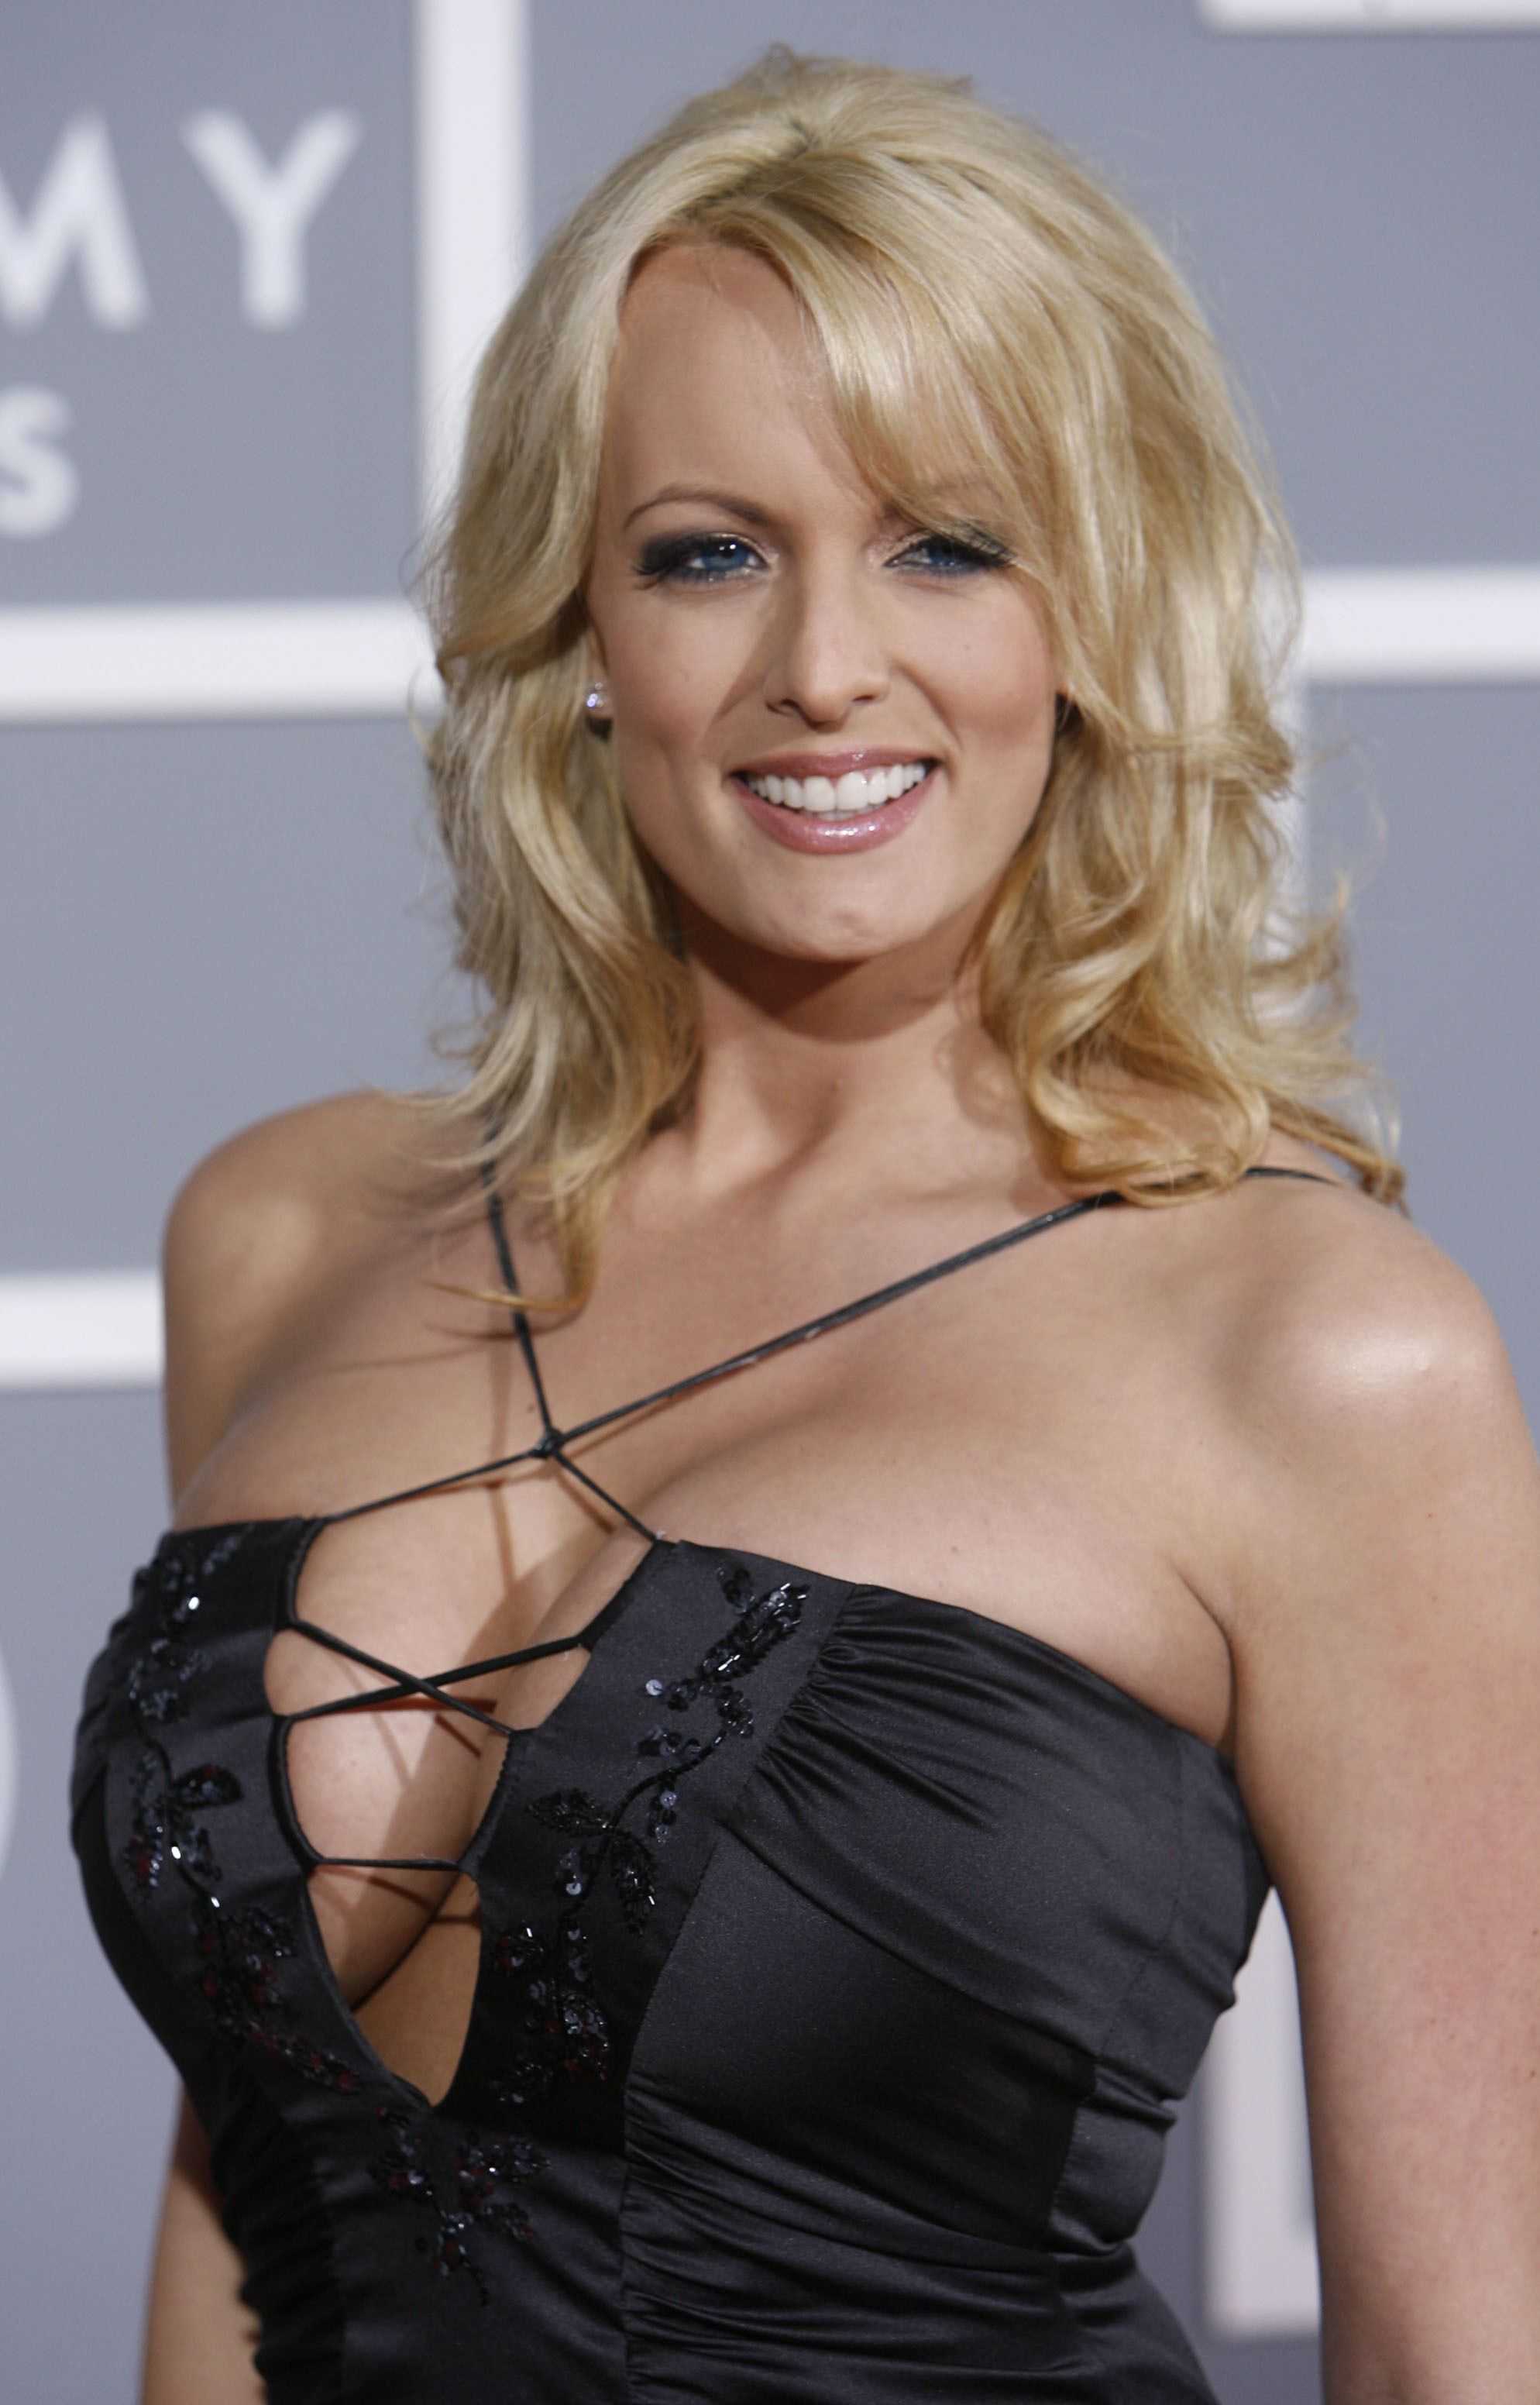 Rather valuable porn star stormy daniels happens. suggest